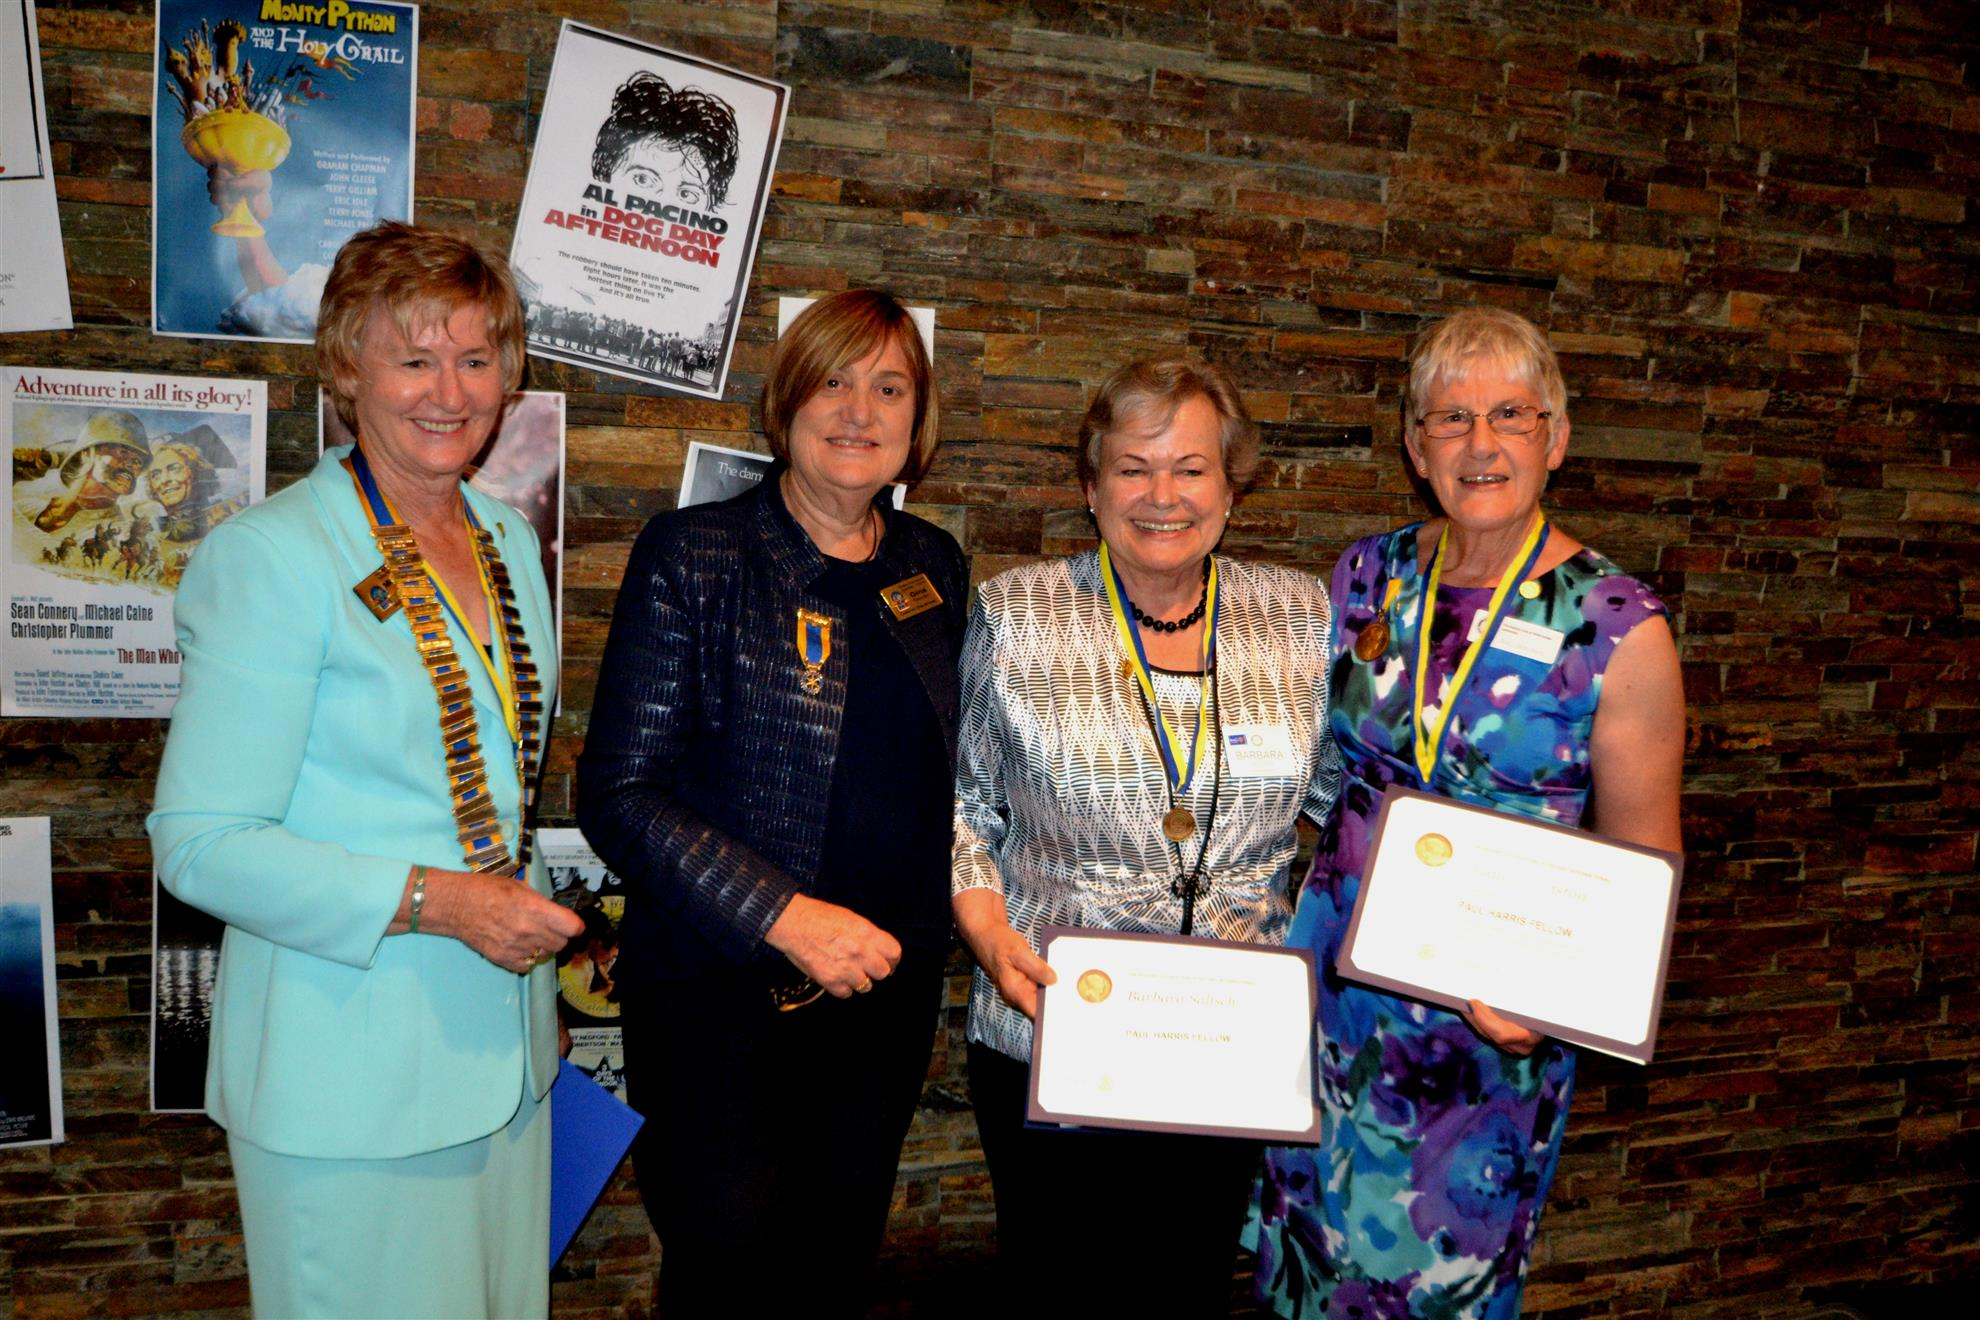 Barbara and Judi PHF Awarded 40th Anniversary Dinner